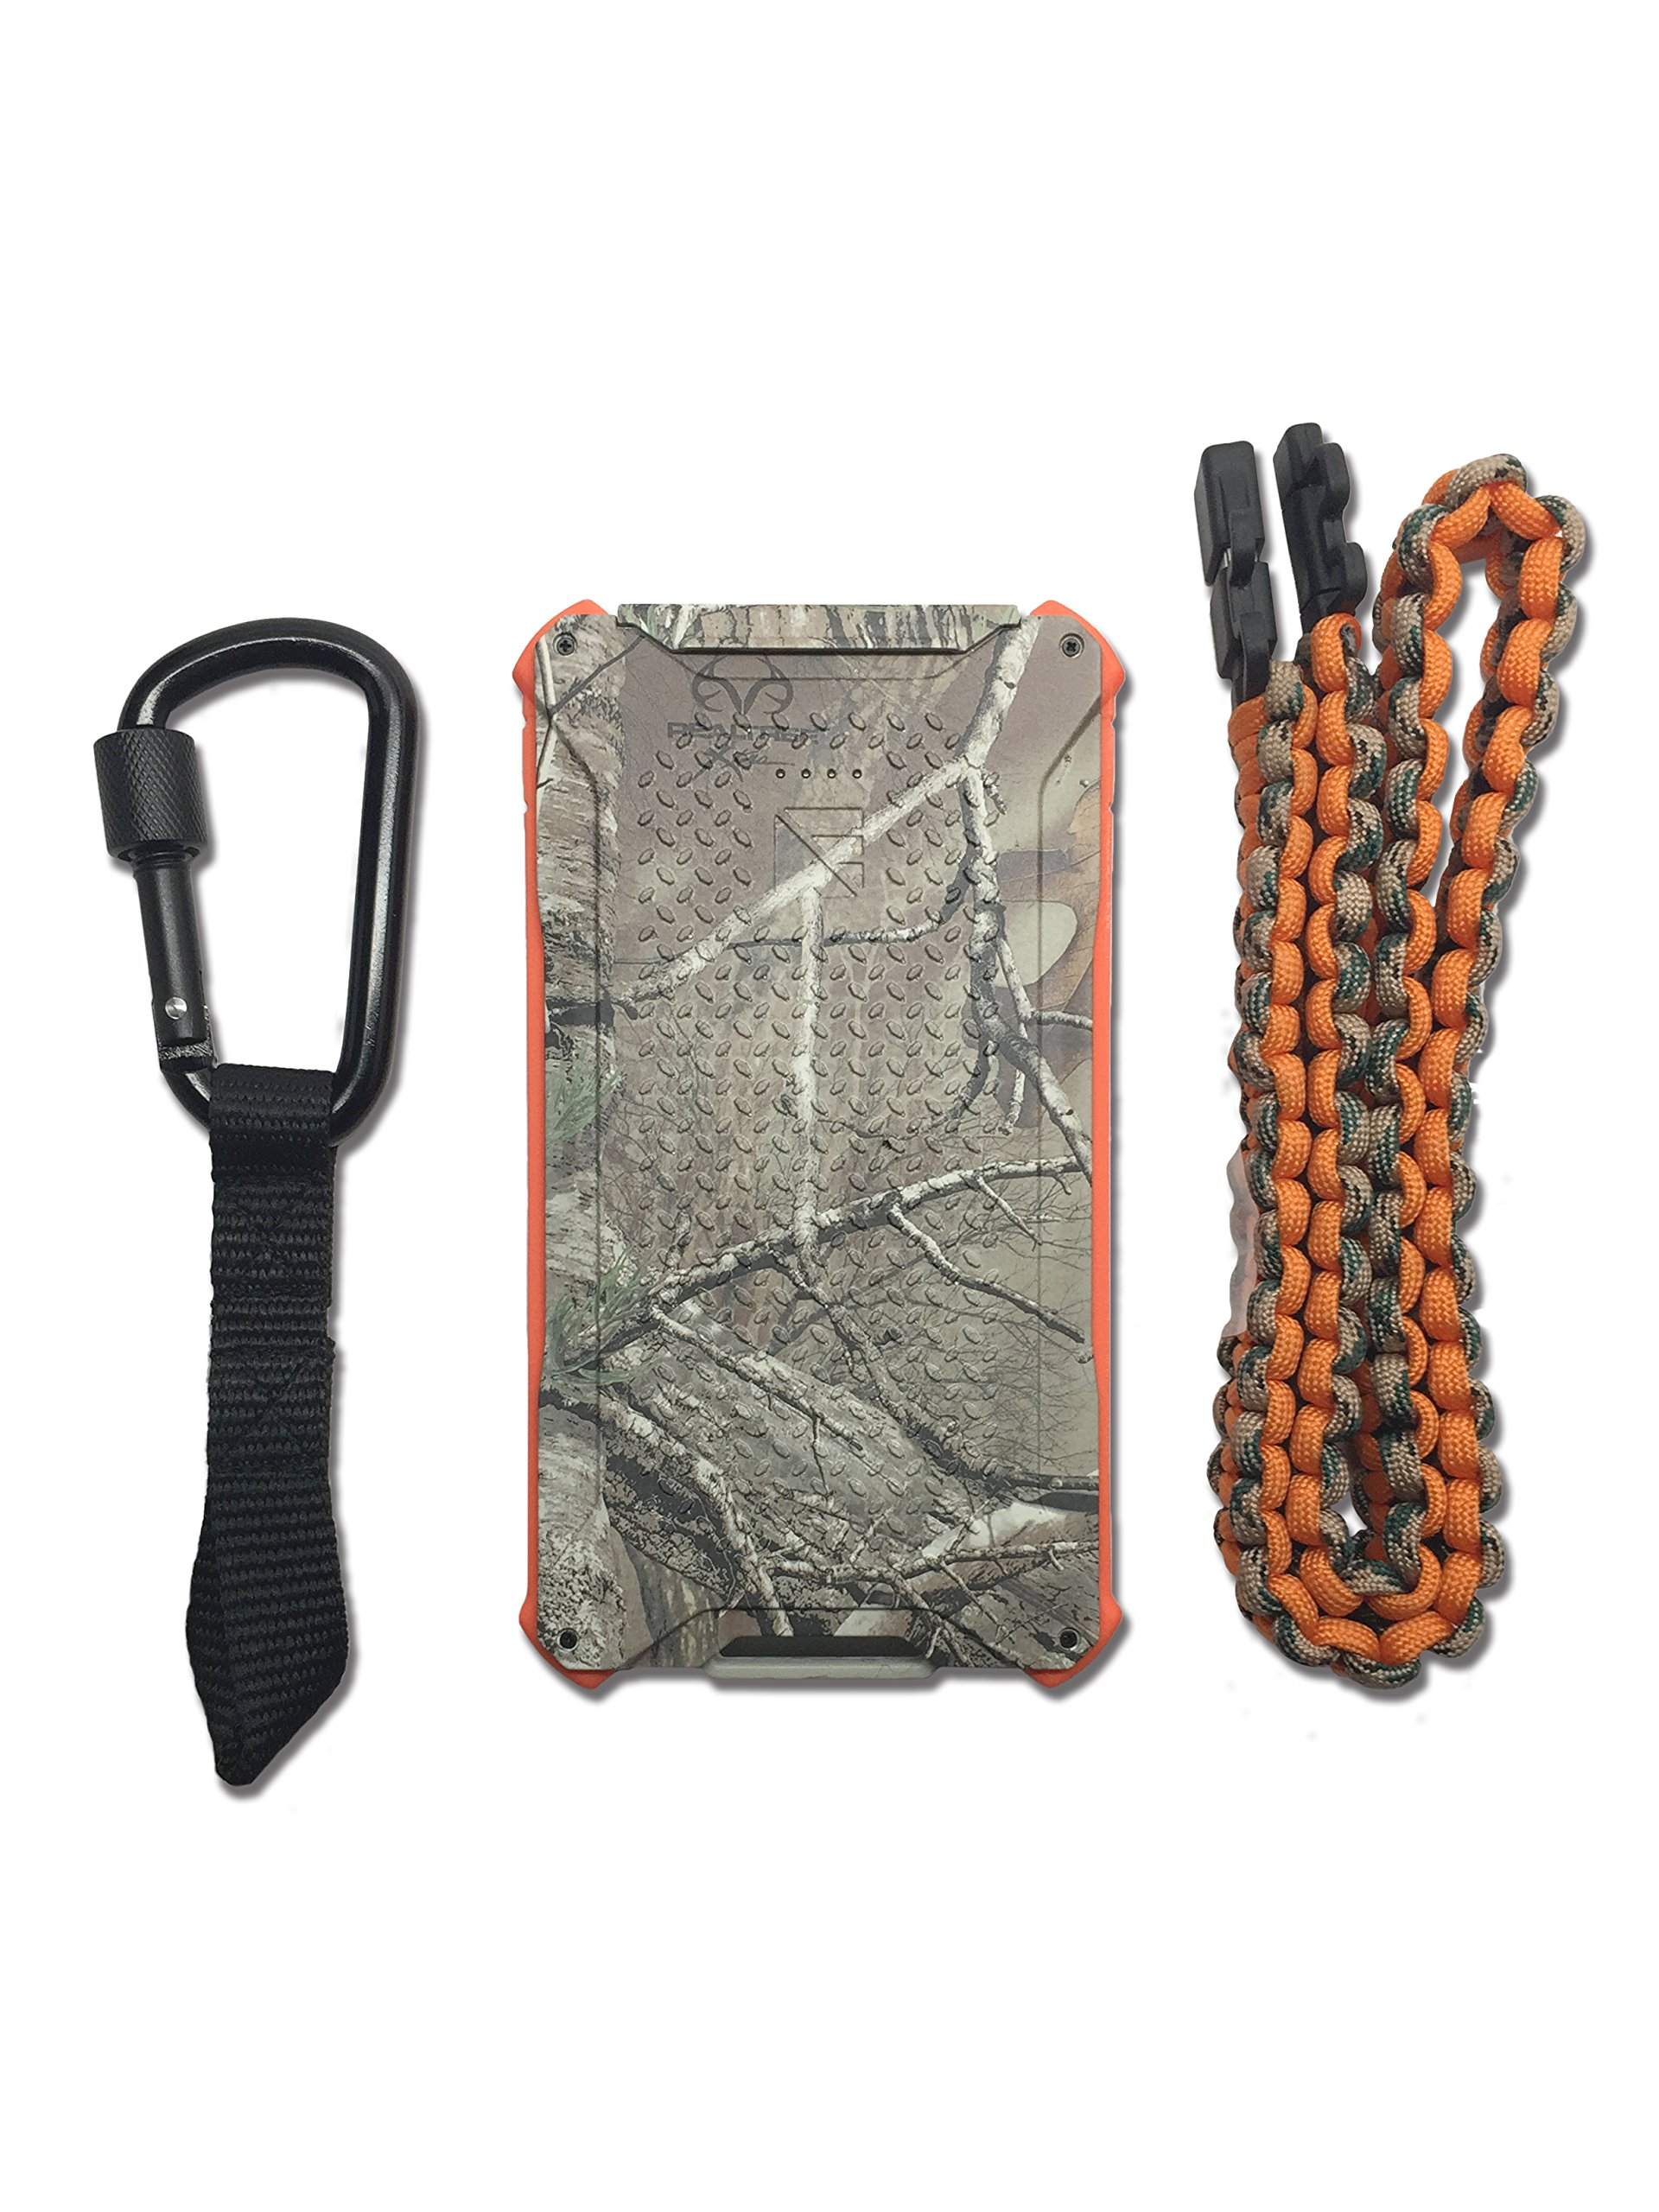 Dark Energy Poseidon IP68 Waterproof, Shockproof, Dustproof, 10,000mah, 2 USB Port, 3.4 Amp Portable Charger and Light PLUS Paracord Charging Cable, Realtree by Dark Energy (Image #8)